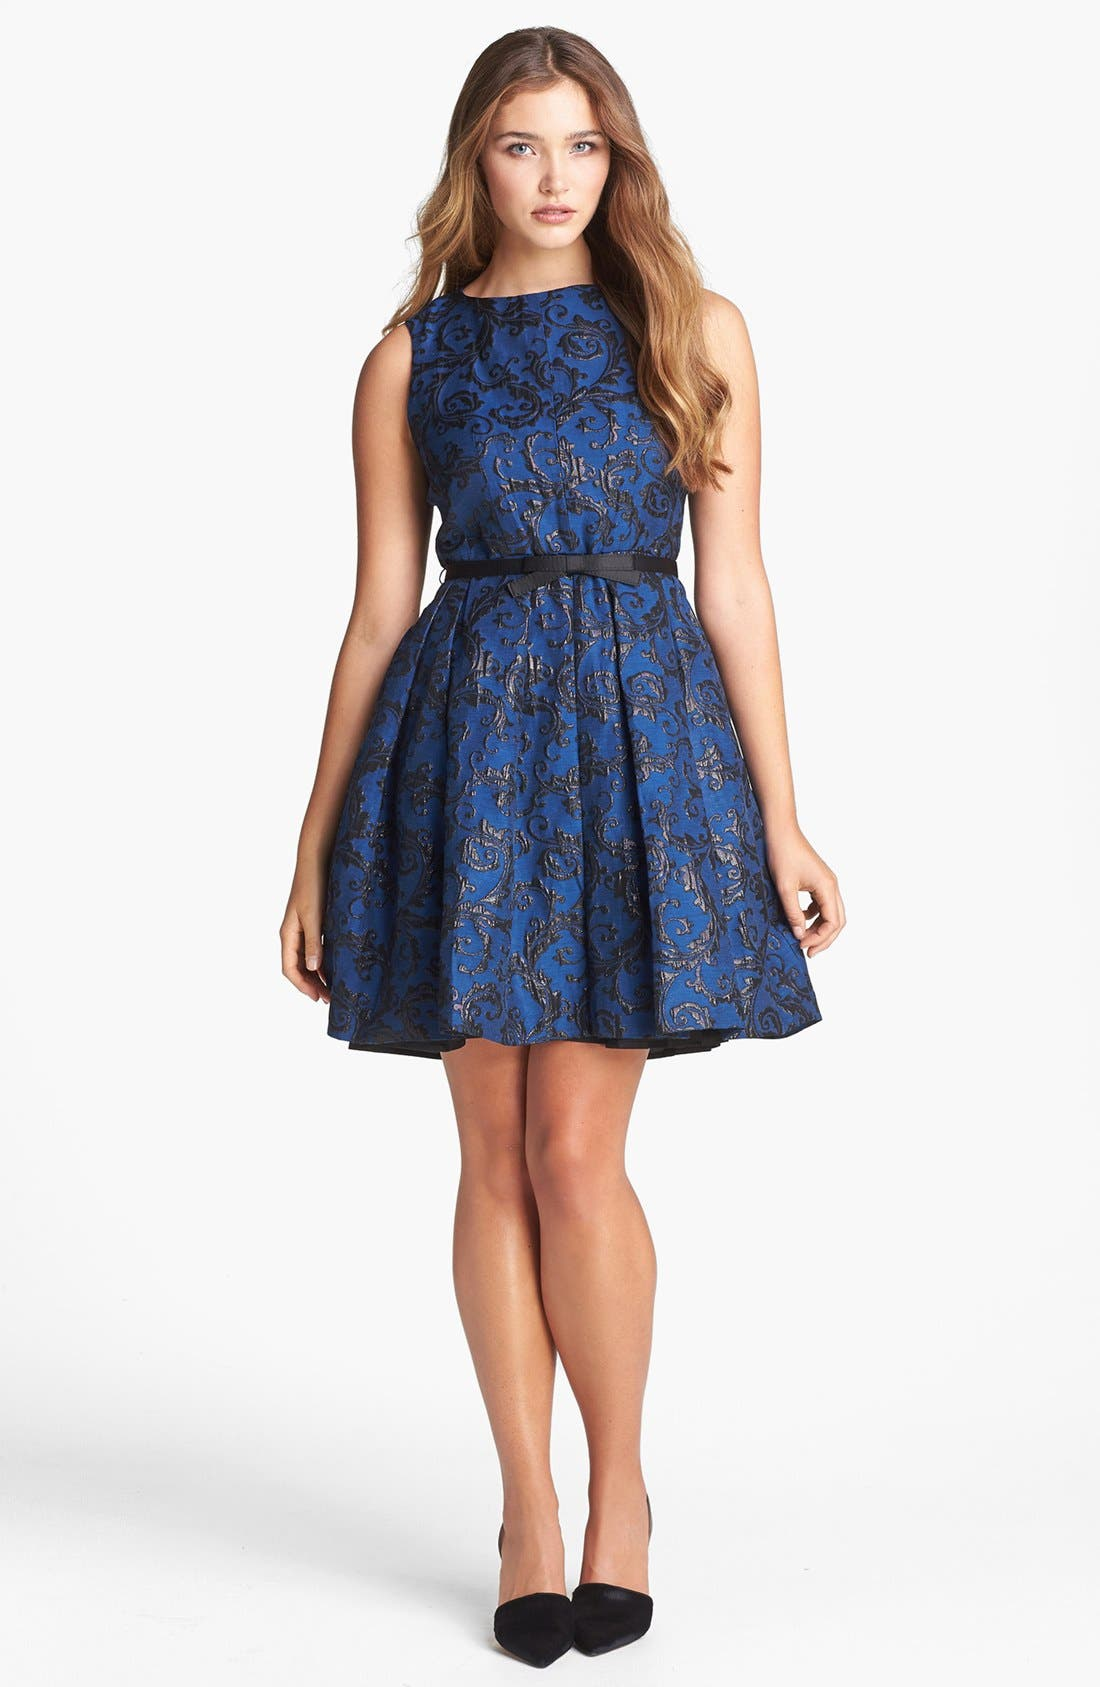 Alternate Image 1 Selected - Taylor Dresses Metallic Jacquard Fit & Flare Dress